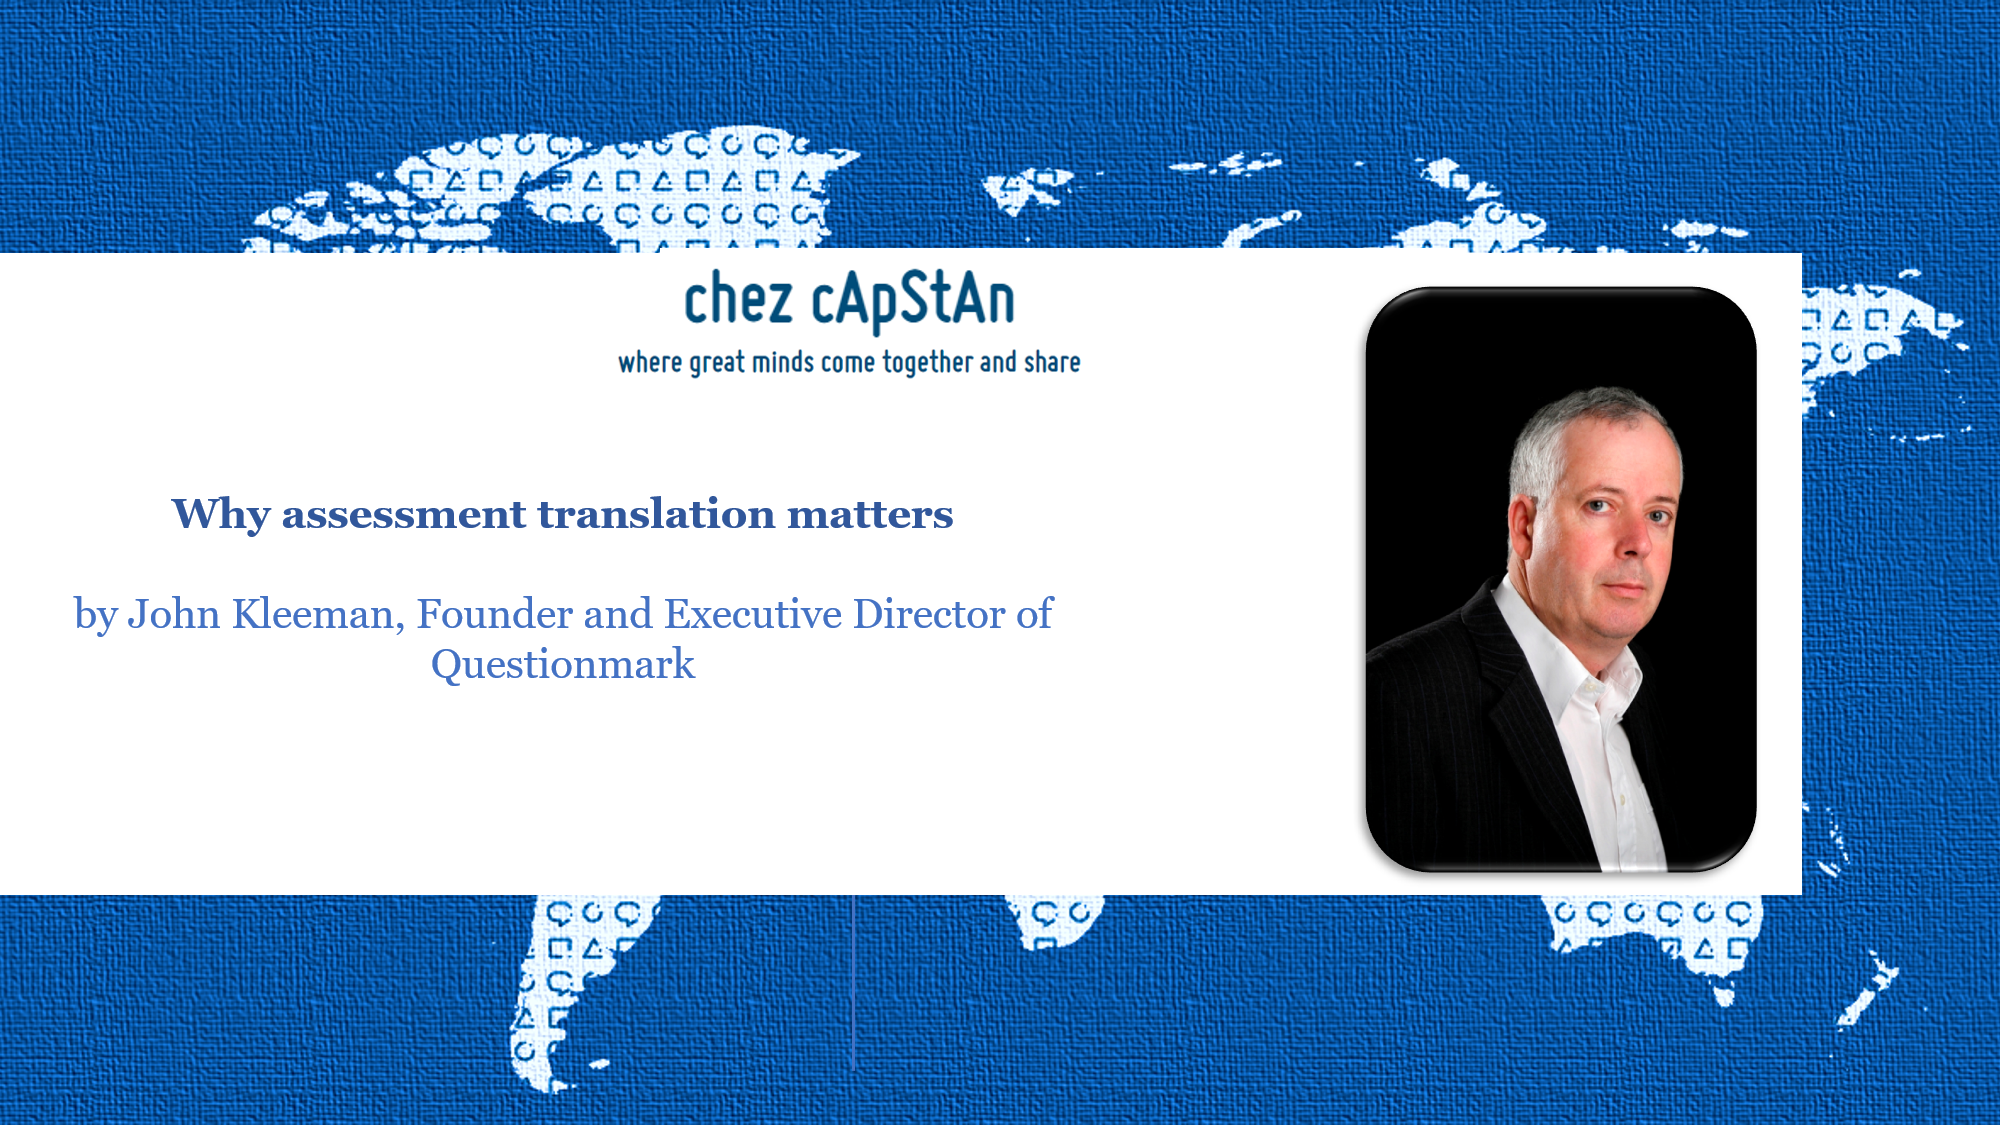 Why assessment translation matters